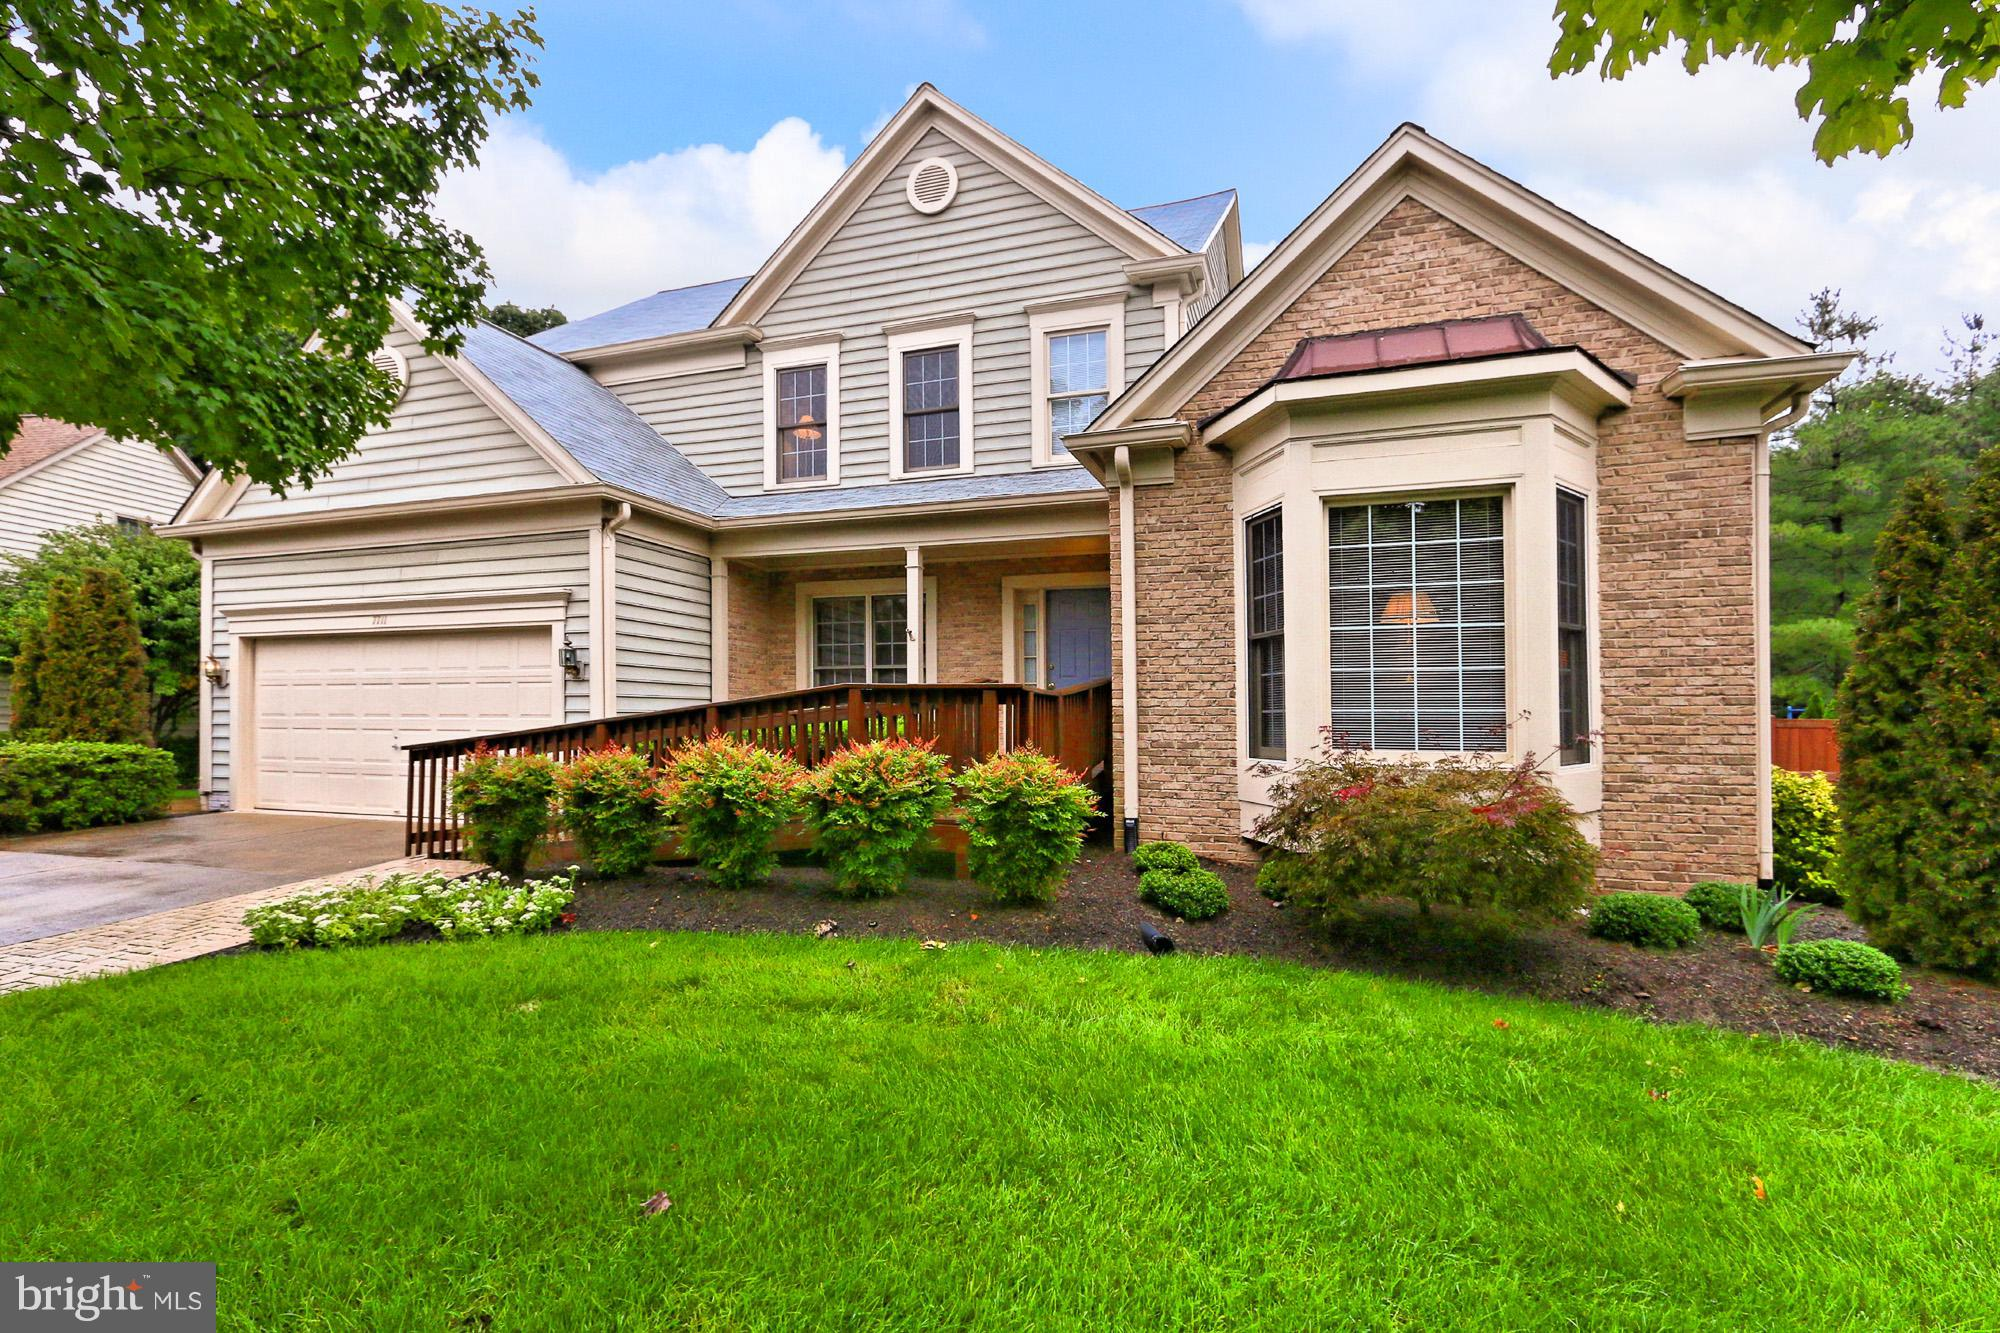 Beautiful Classic Col in Island Creek! Inter. Offers H/W Floors,Two Story Foyer, Main Lvl Master Suite, LR/Library & DR w/Wainscoting, Grand Two Story FR w/2-Sided Gas FP to Kit, Large Eat-In Kit w/Center Island, Walk-In Pantry & Breakfast Nook w/Slider to Deck! Upper Lvl Boasts 3 BRs, Incl Master Suite #2 w/Remodeled BA! Walk-Up LL has a Large Rec Rm w/Gas FP, Den, Exercise/Game Rm & Full BA!